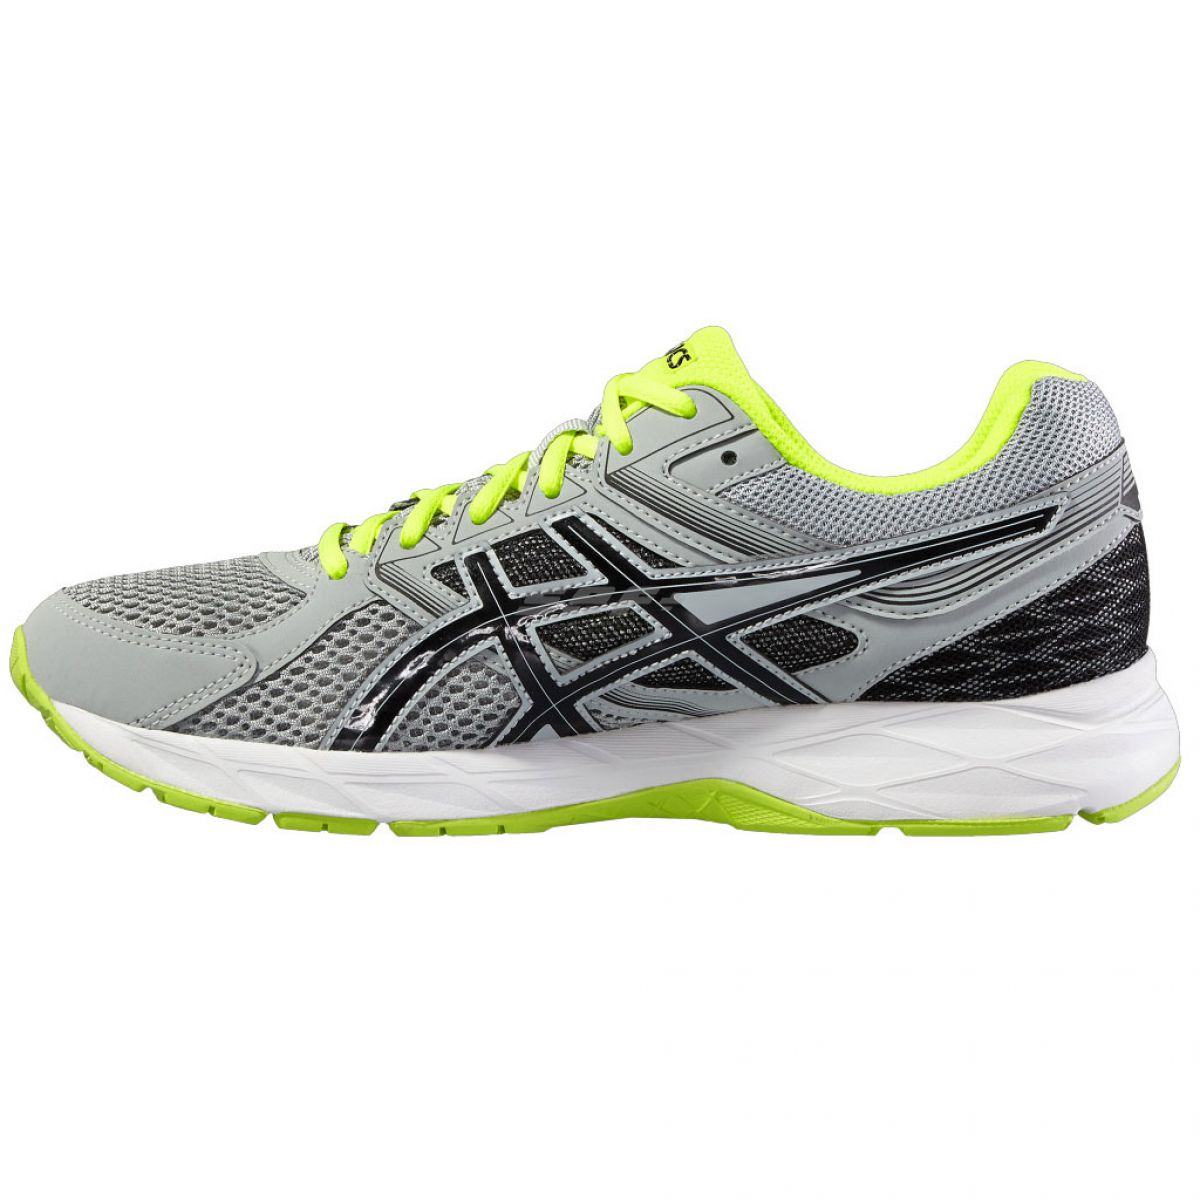 КРОССОВКИ ASICS GEL-CONTEND 3 SR